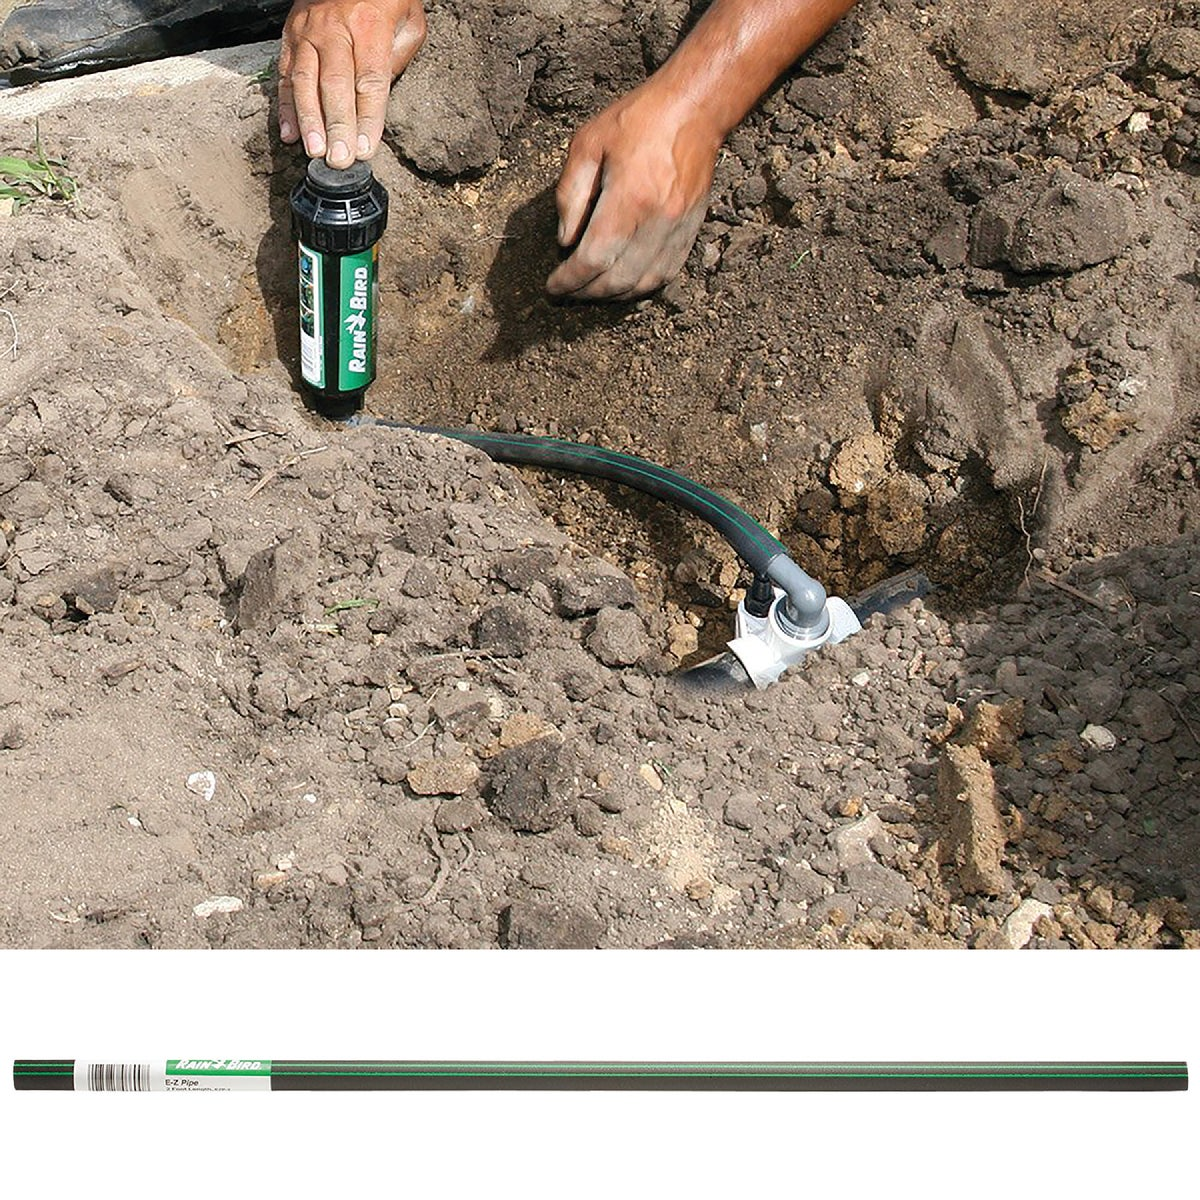 2' FLEX PIPE - SWGP2 by Rain Bird Corp Consu